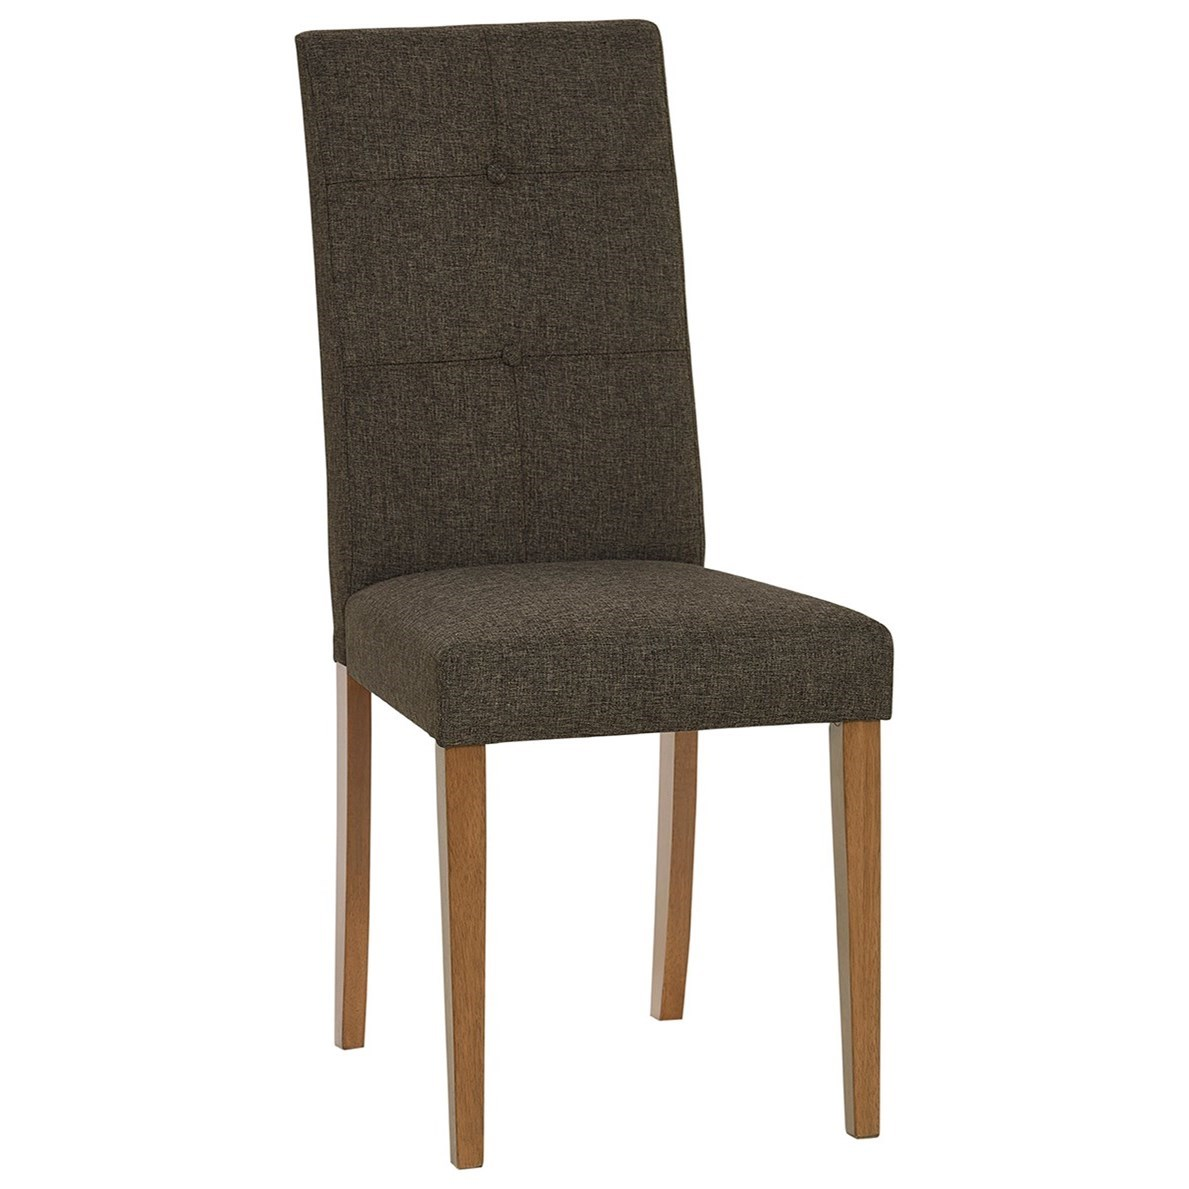 Arcade Side Chair by Progressive Furniture at Simply Home by Lindy's